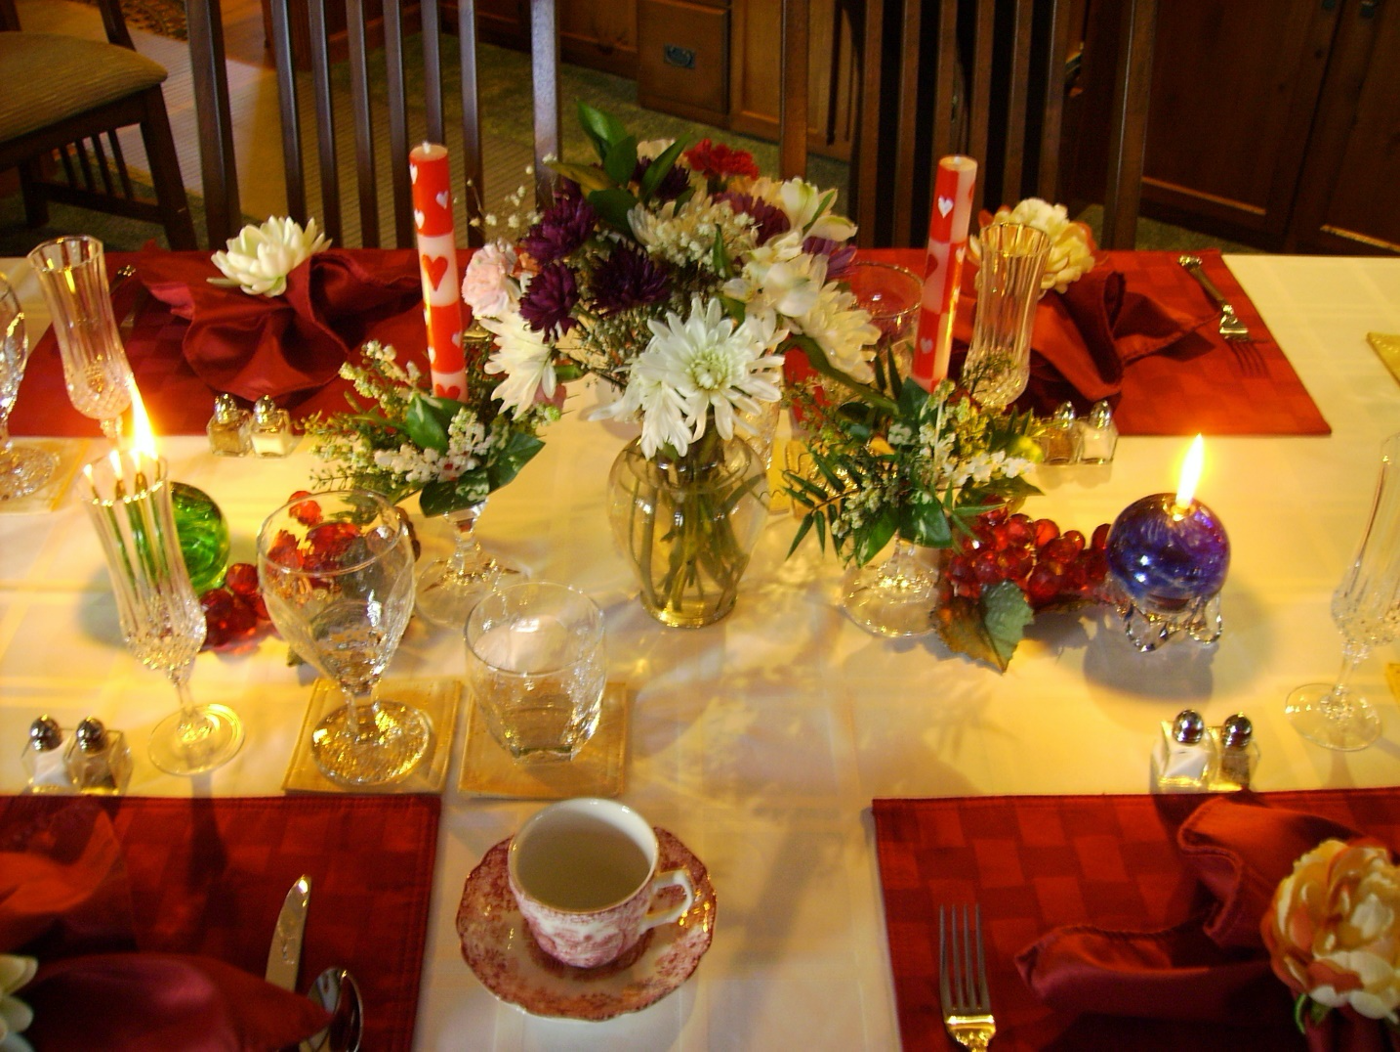 Valentines Table Setting for Breakfast